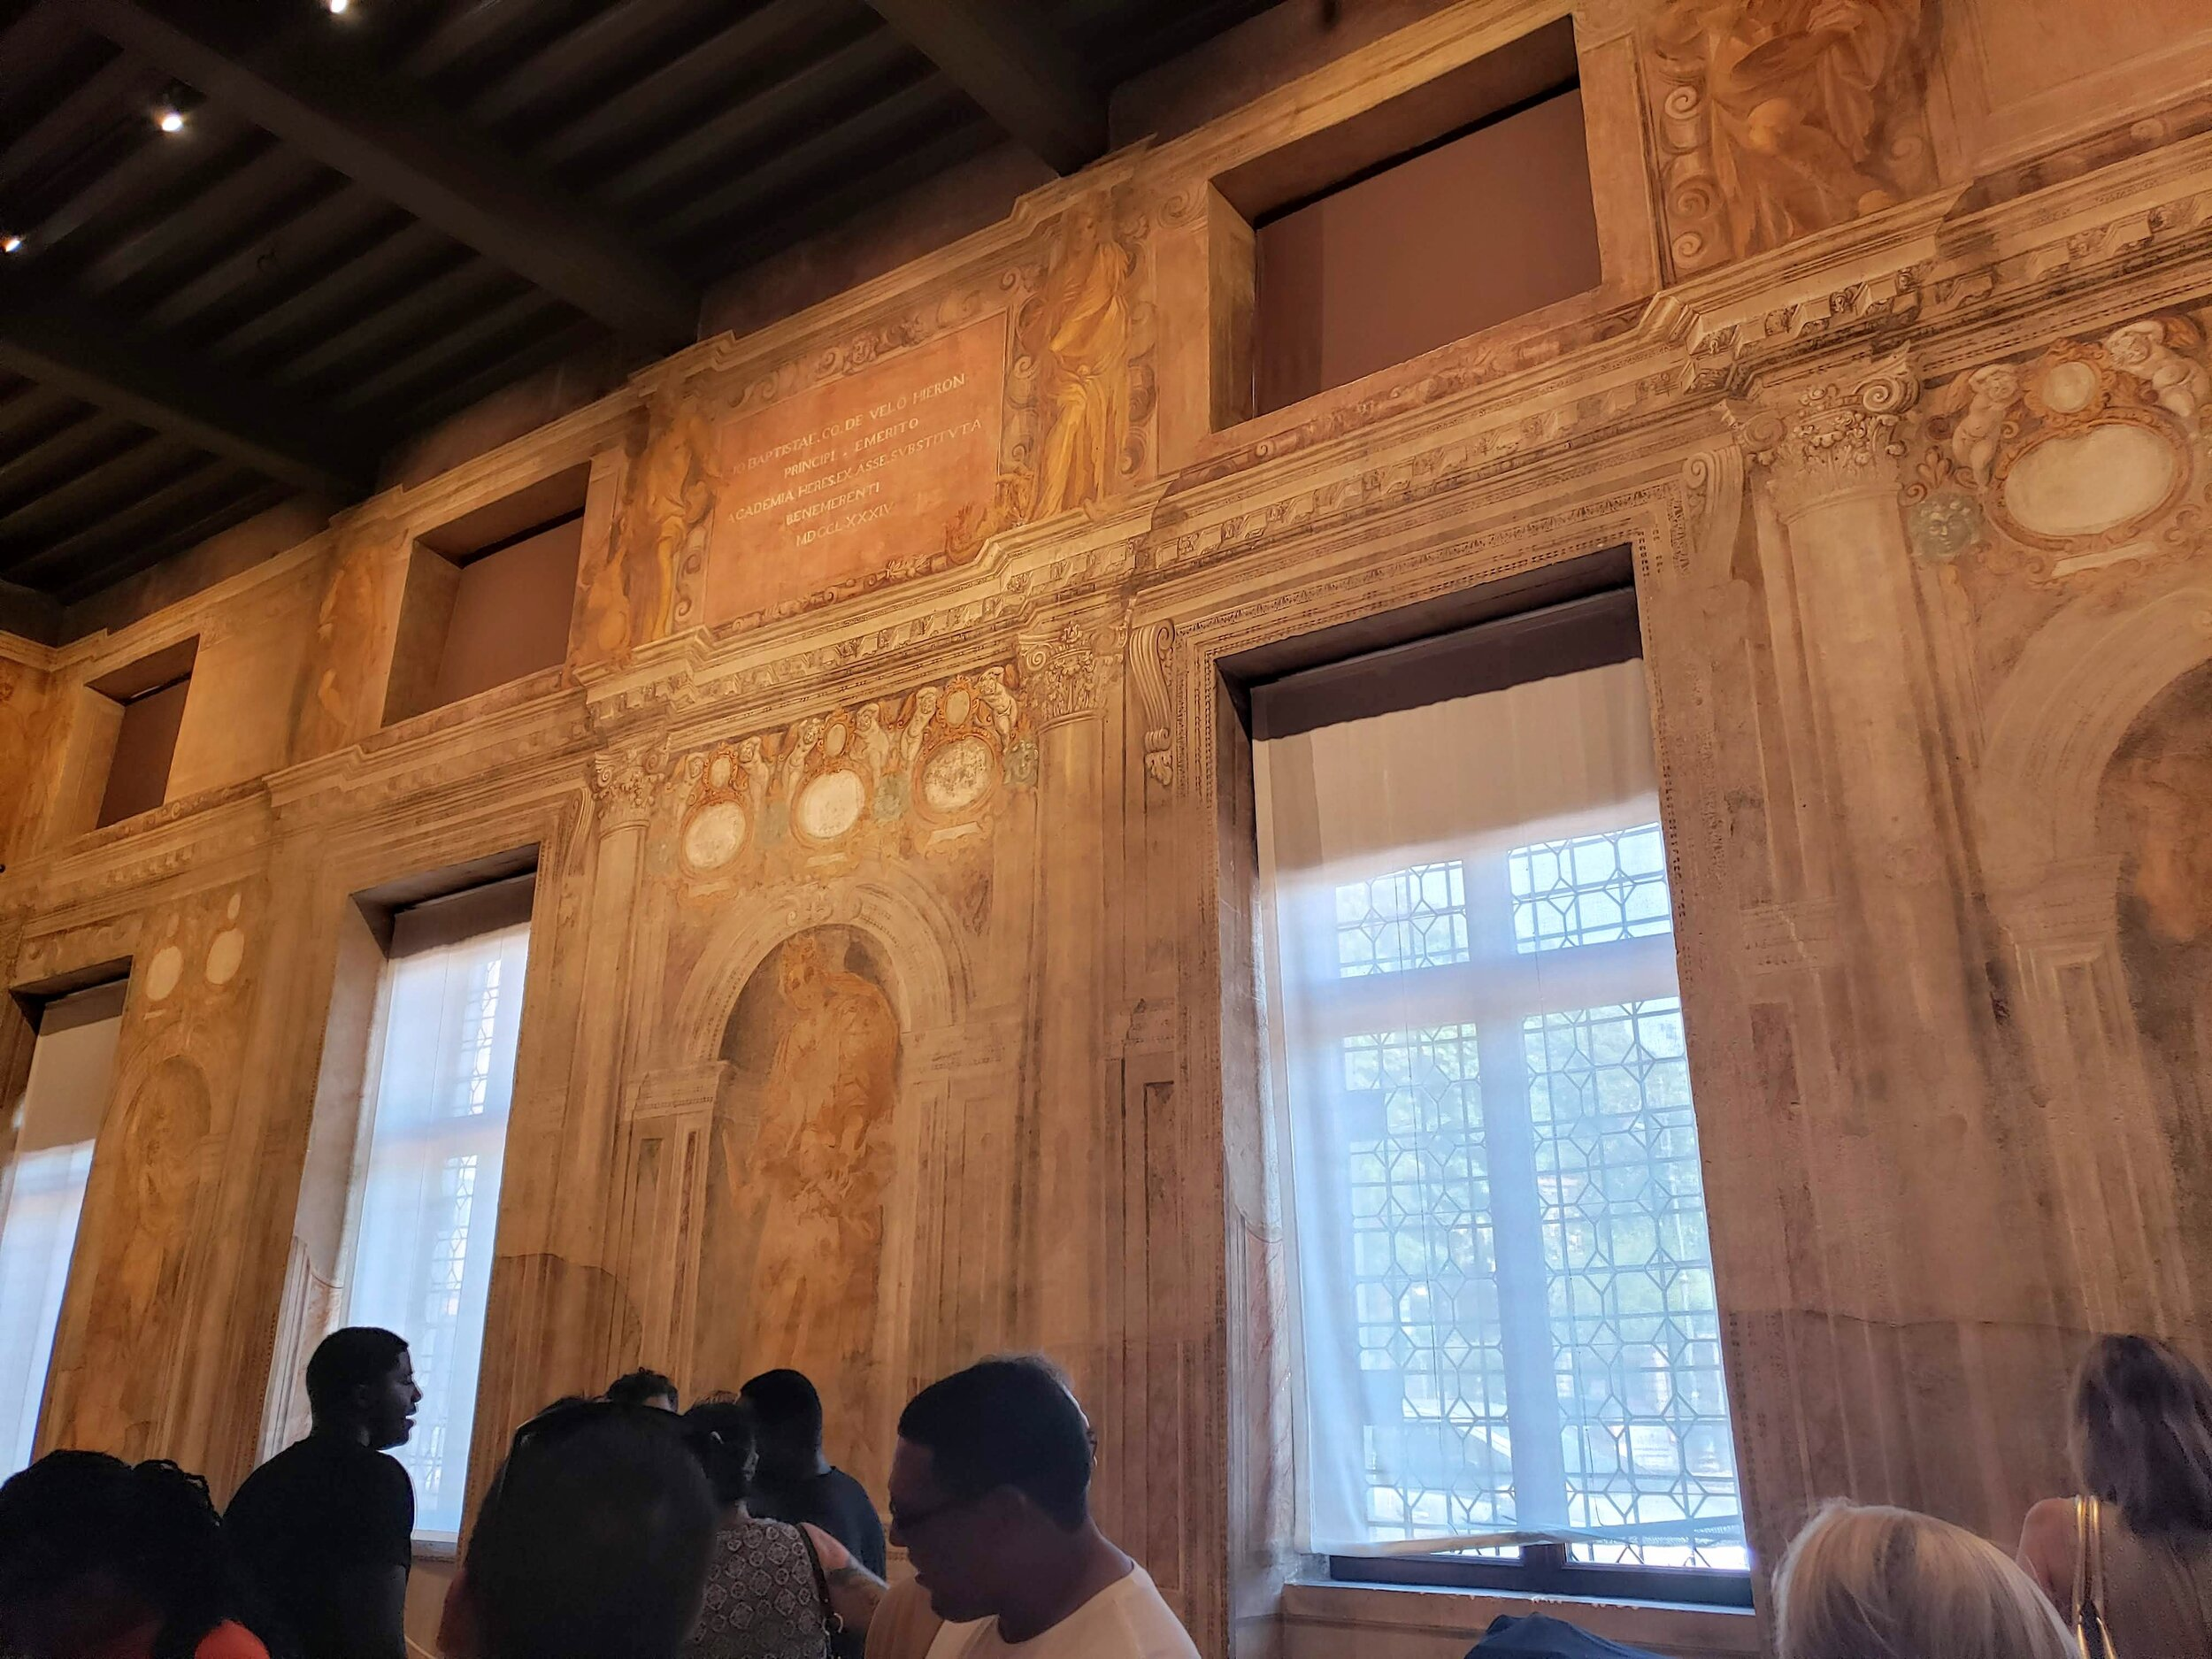 The lobby area sets the tone of the whole space with these incredible  trompe l'oeil  (fooling the eye) paintings that definitely look like three-dimensional architectural elements.